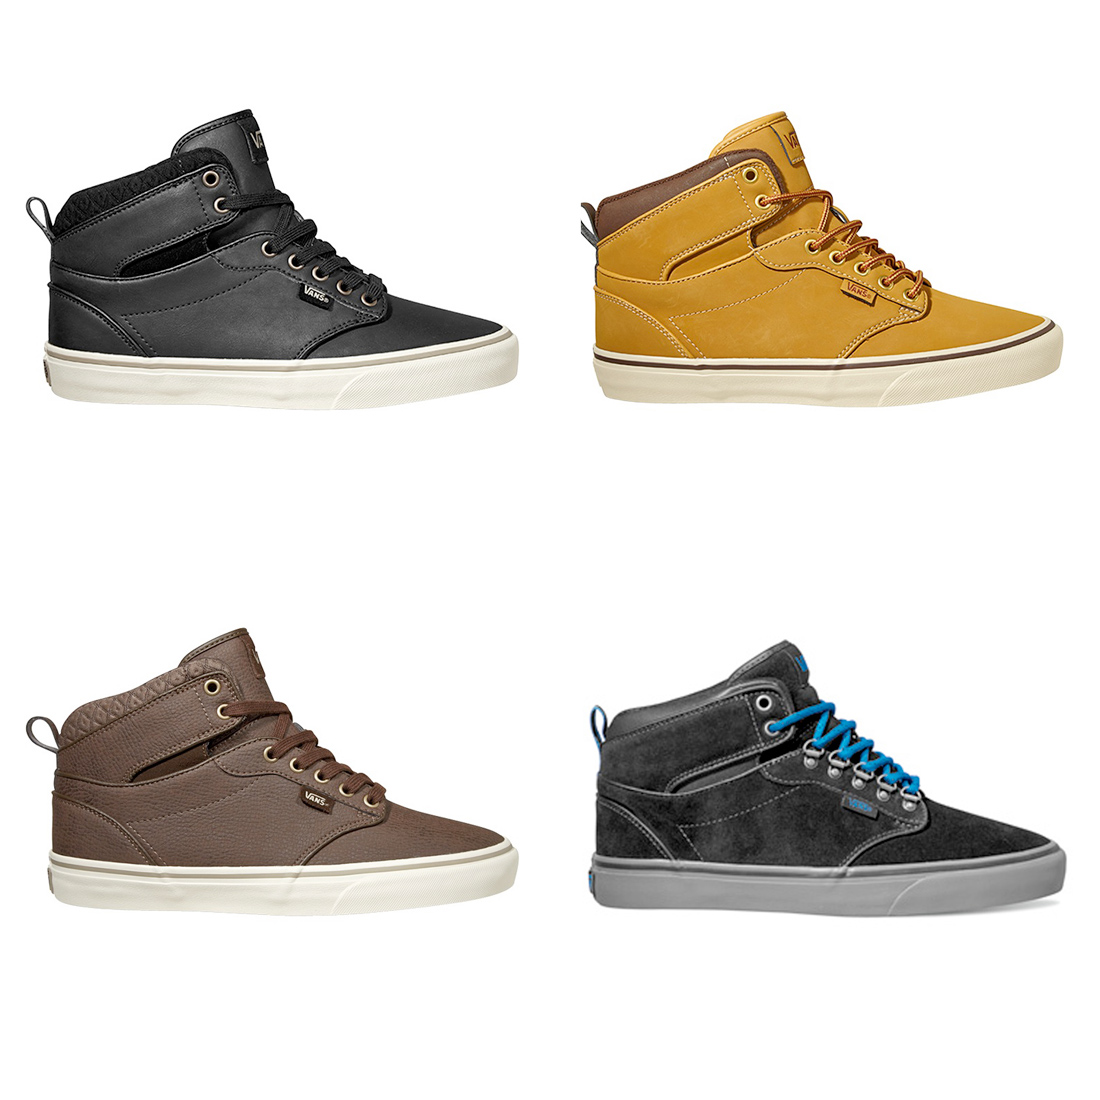 da9e2959f0a Details about Vans Mens Shoes - Atwood Hi Tops - Trainers